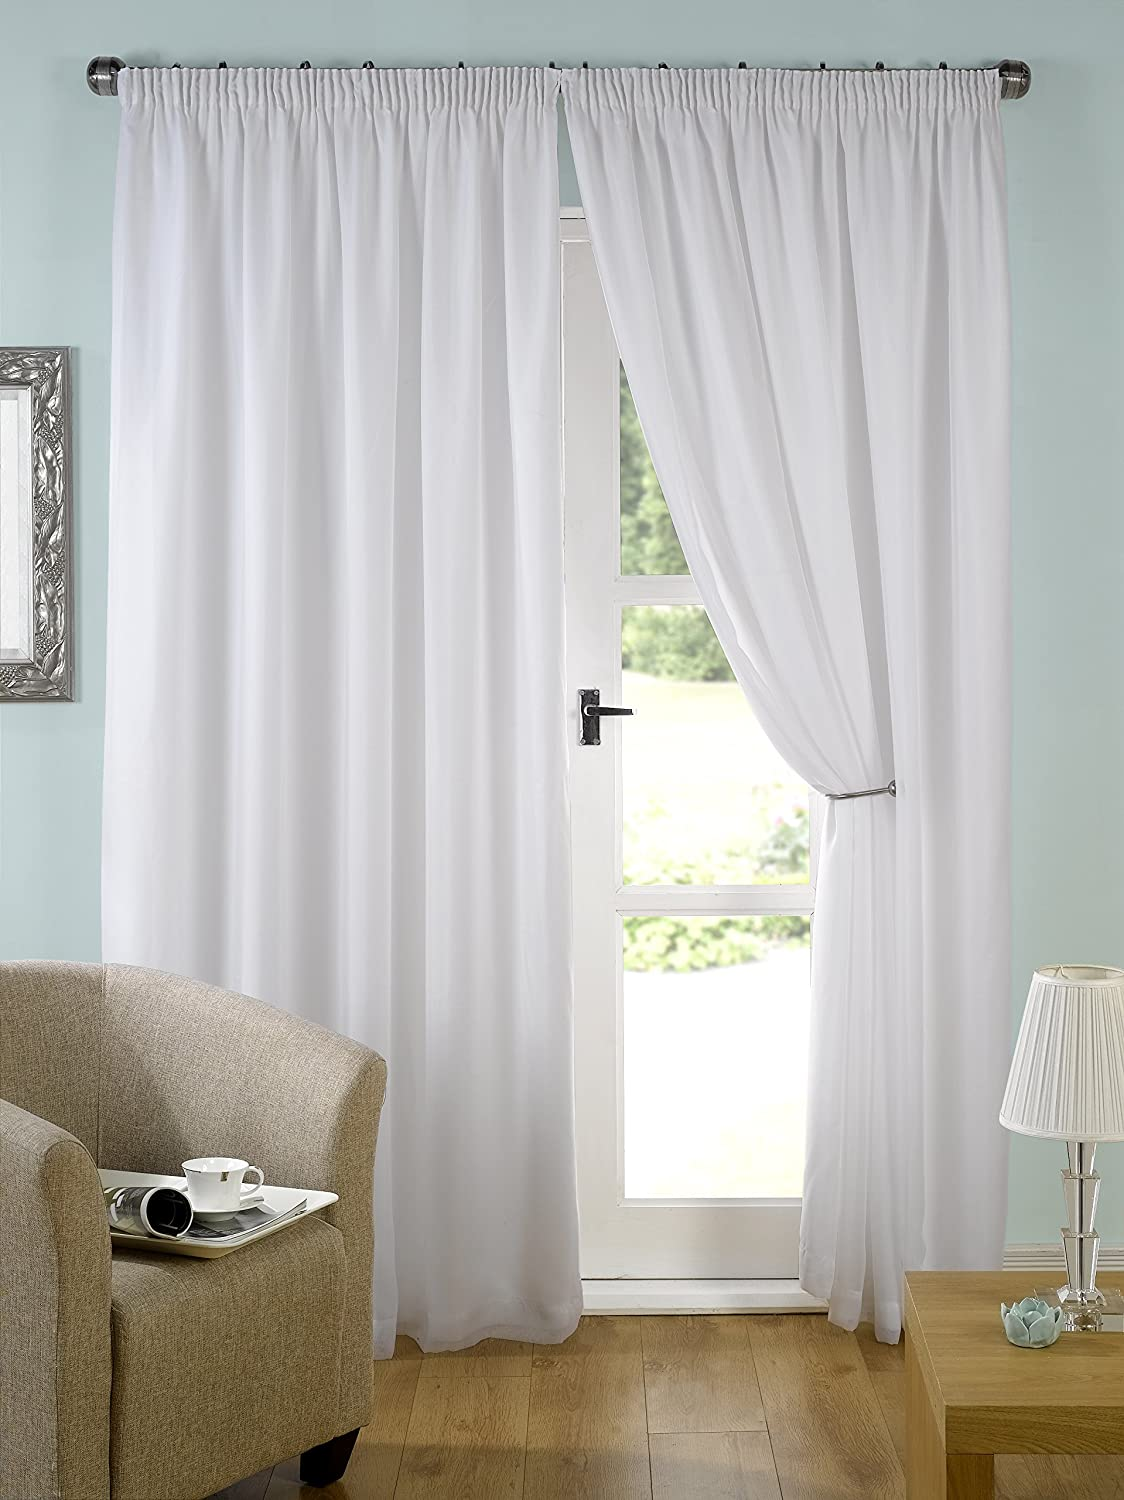 and silver curtains fashions home cagliari drapery rpp softline white panel